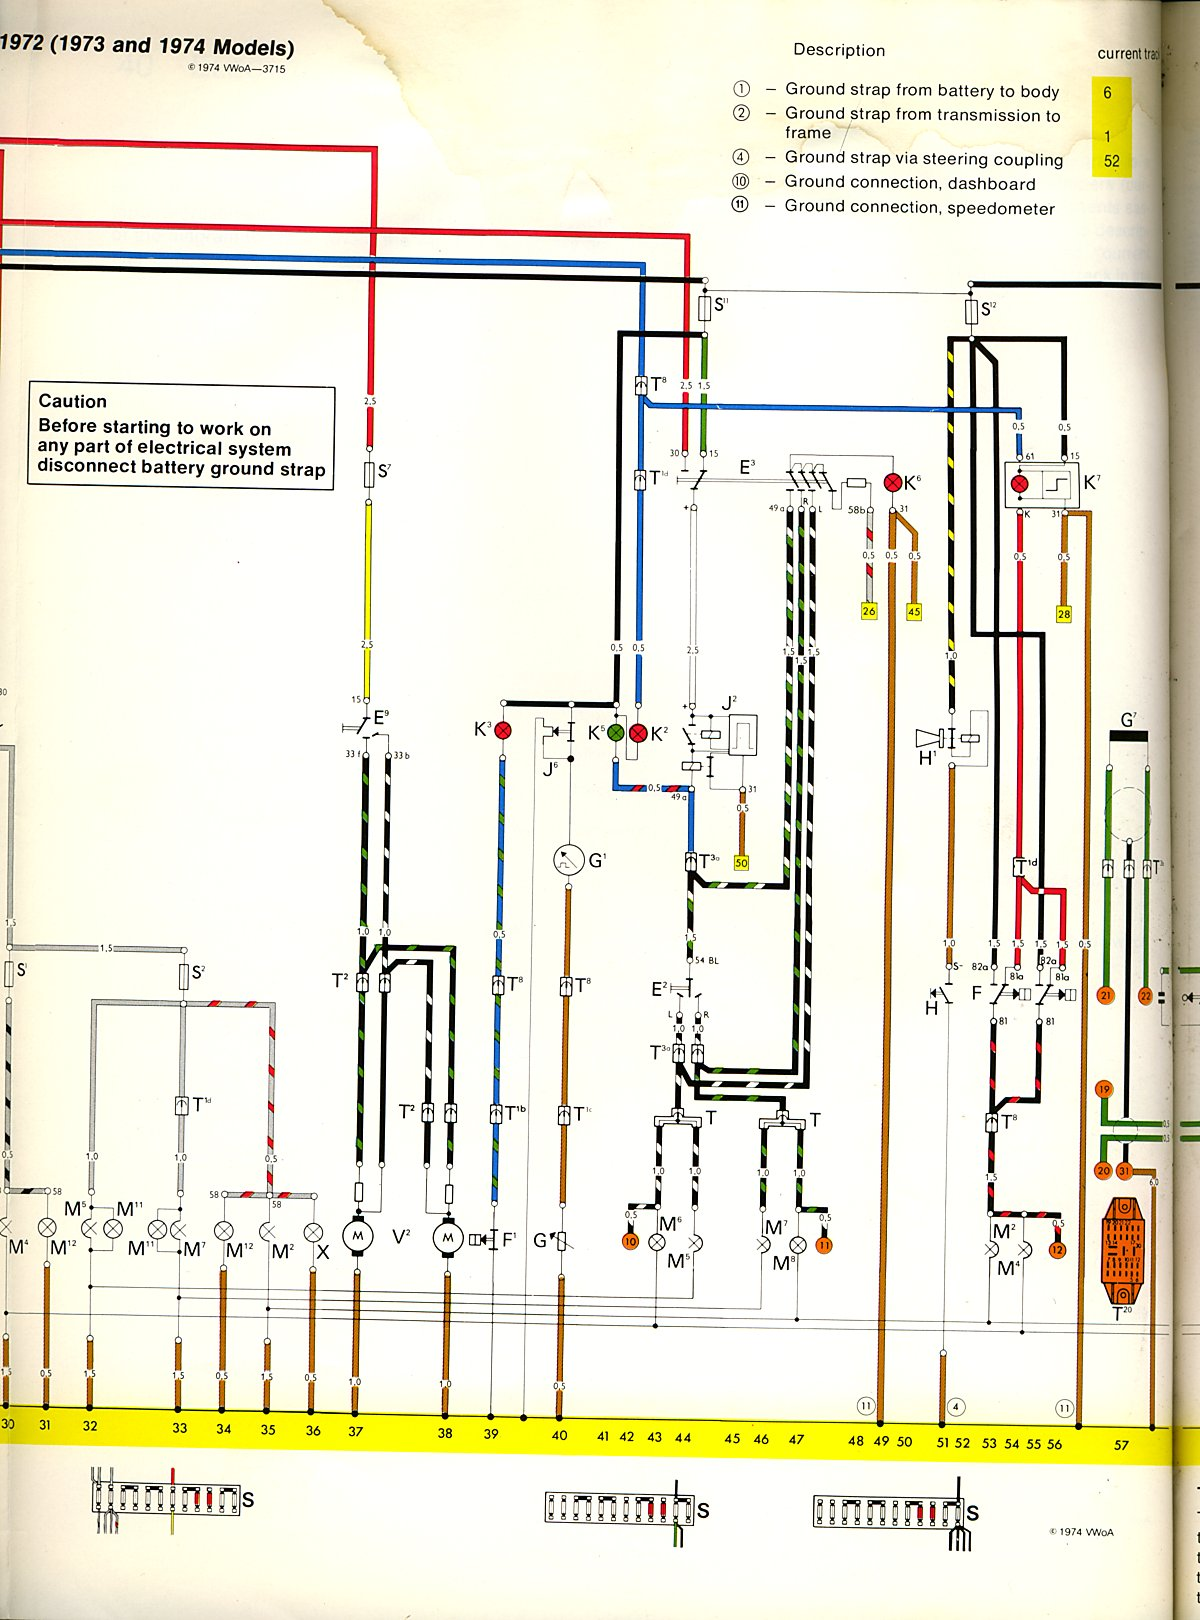 Classic Vw Wiring Expert Diagram 1967 Beetle Color I M Looking For A Coded 1973